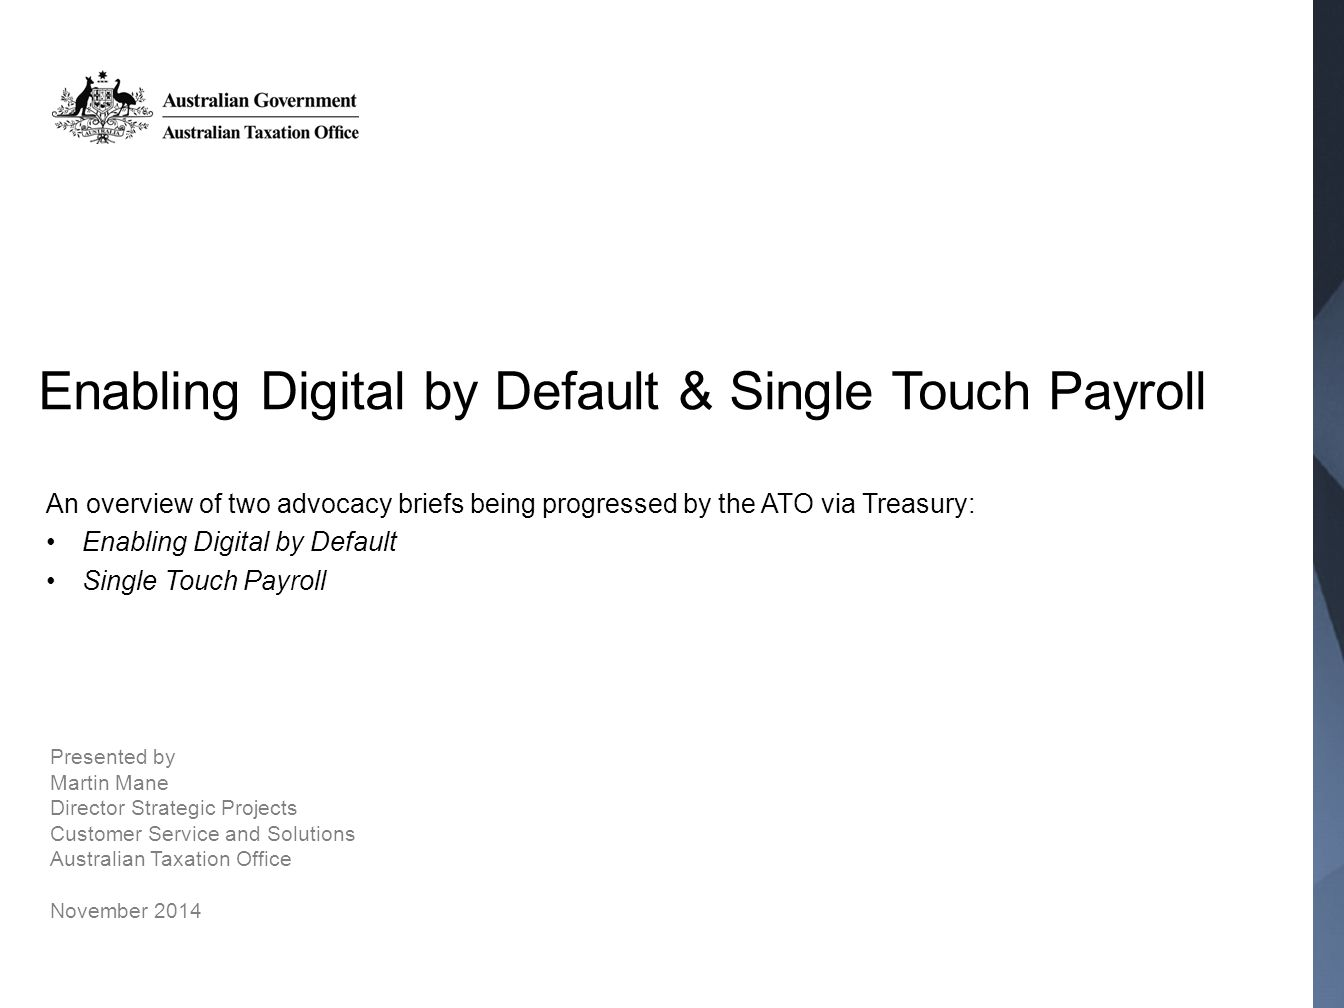 Enabling Digital by Default & Single Touch Payroll An overview of two advocacy briefs being progressed by the ATO via Treasury: Enabling Digital by Default Single Touch Payroll Presented by Martin Mane Director Strategic Projects Customer Service and Solutions Australian Taxation Office November 2014